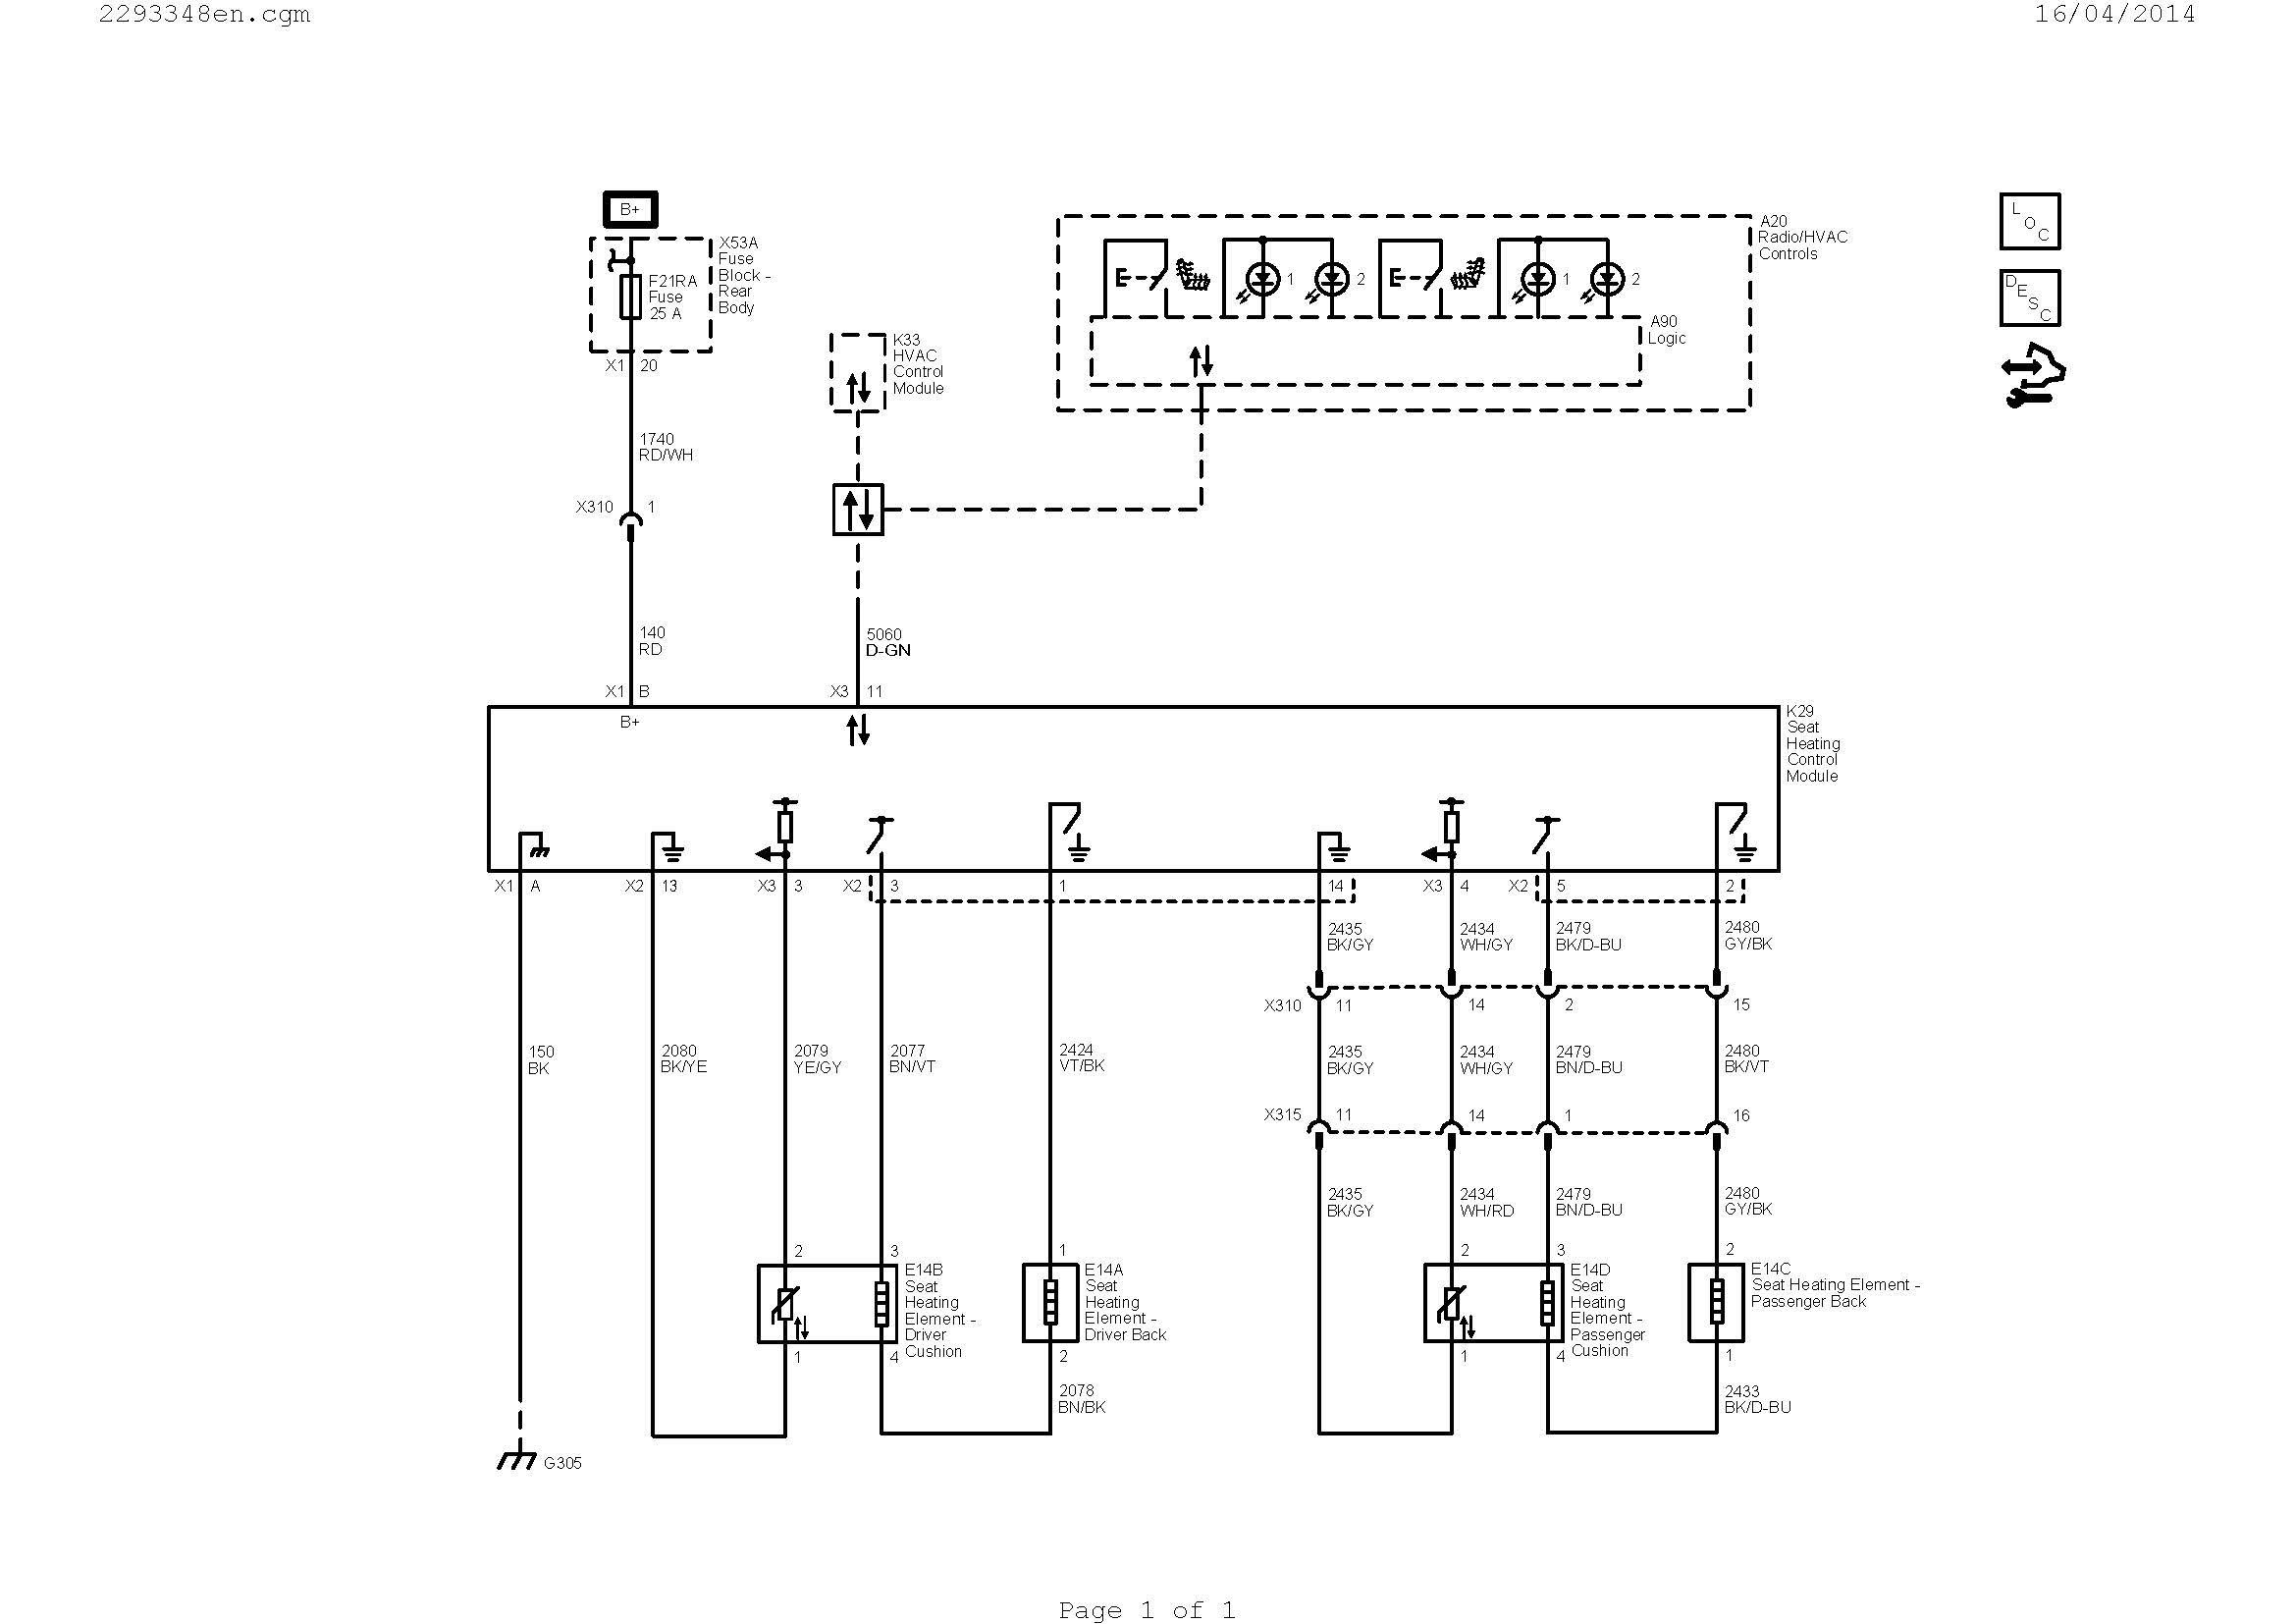 intrinsically safe barrier wiring diagram Collection-ac thermostat wiring diagram Collection Wiring A Ac thermostat Diagram New Wiring Diagram Ac Valid 4-e